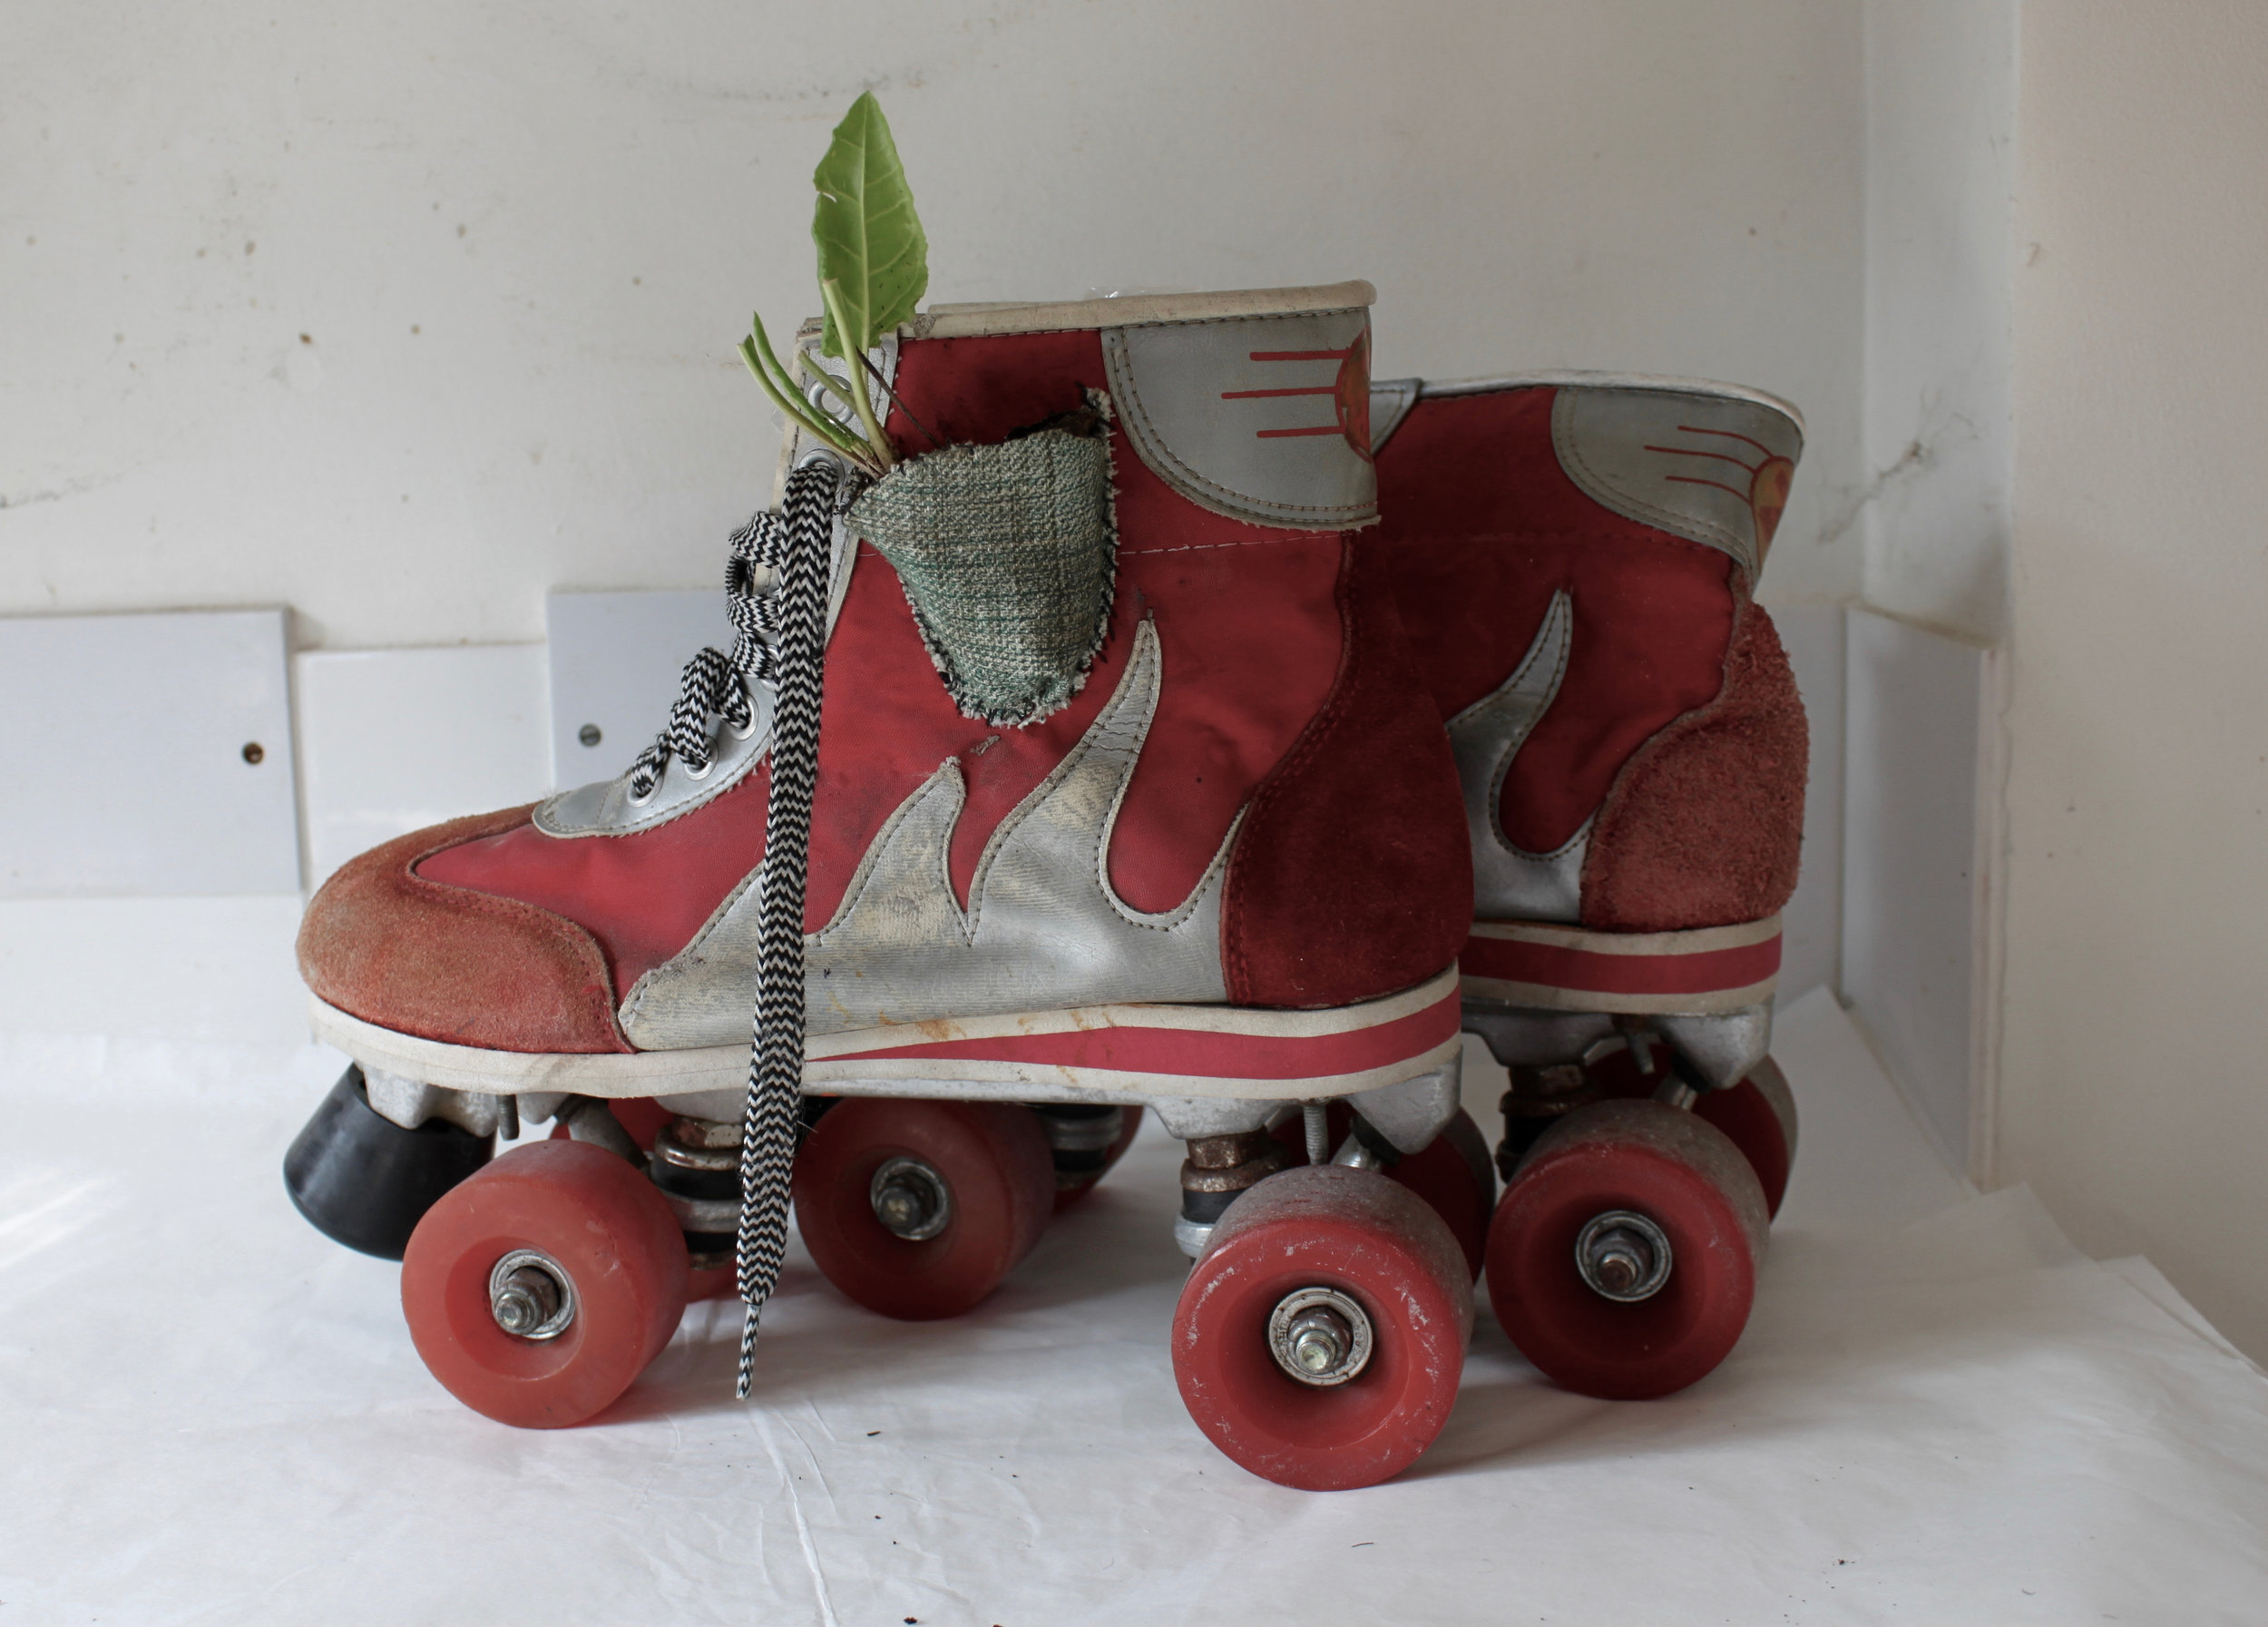 Roller skates, useful means of transporting a plant or two around and allowing for the opportunity of spontaneous planting and spreading of edible plants in the city.